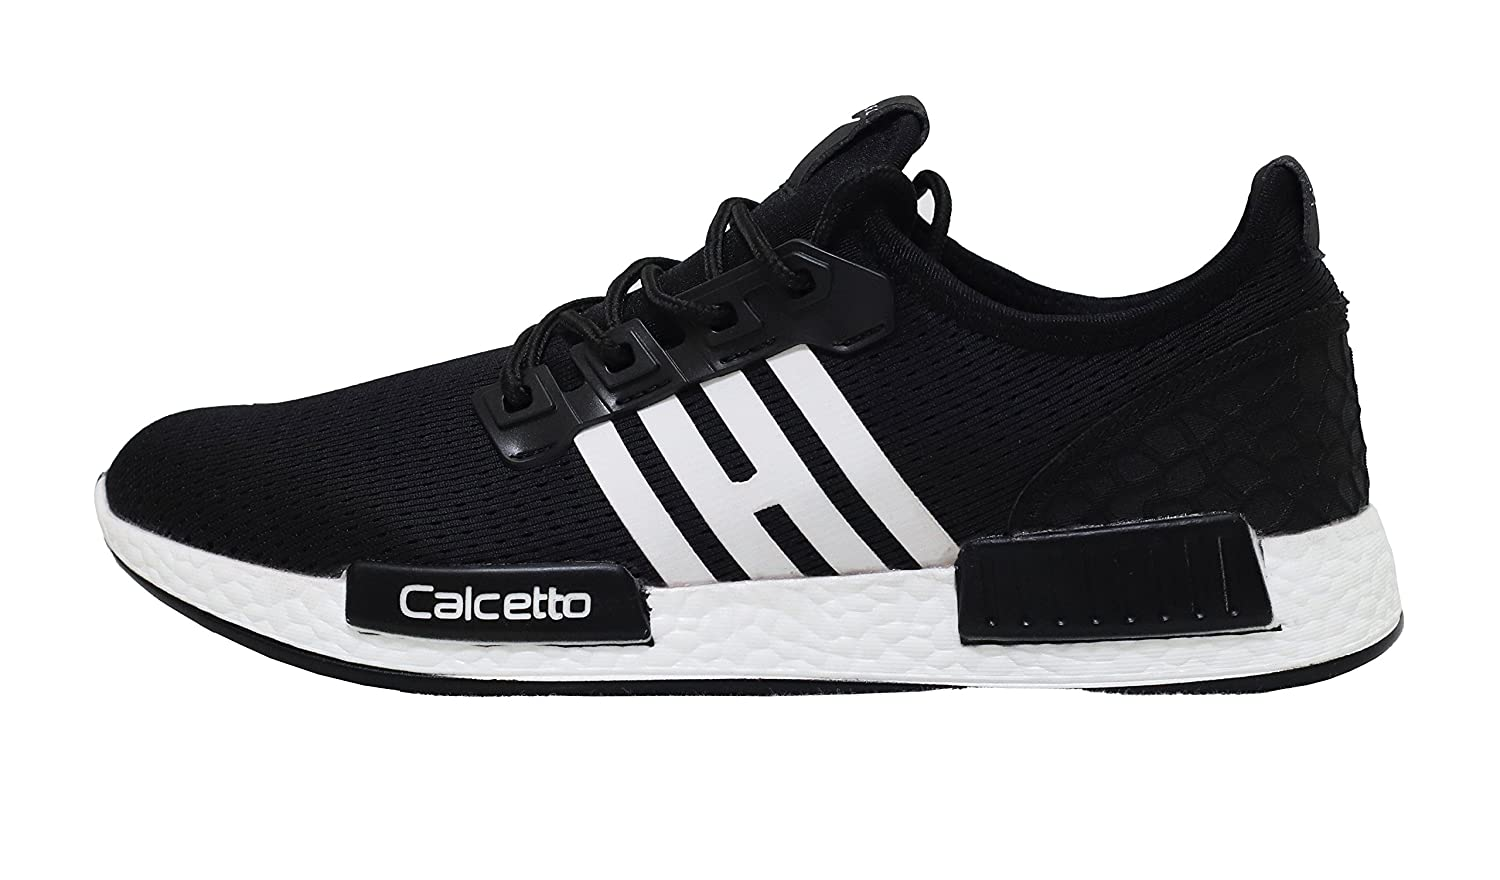 5e344f193a75a8 Calcetto Men's Mesh Sports Running Shoes (fs5_9, 9, Black): Buy Online at  Low Prices in India - Amazon.in